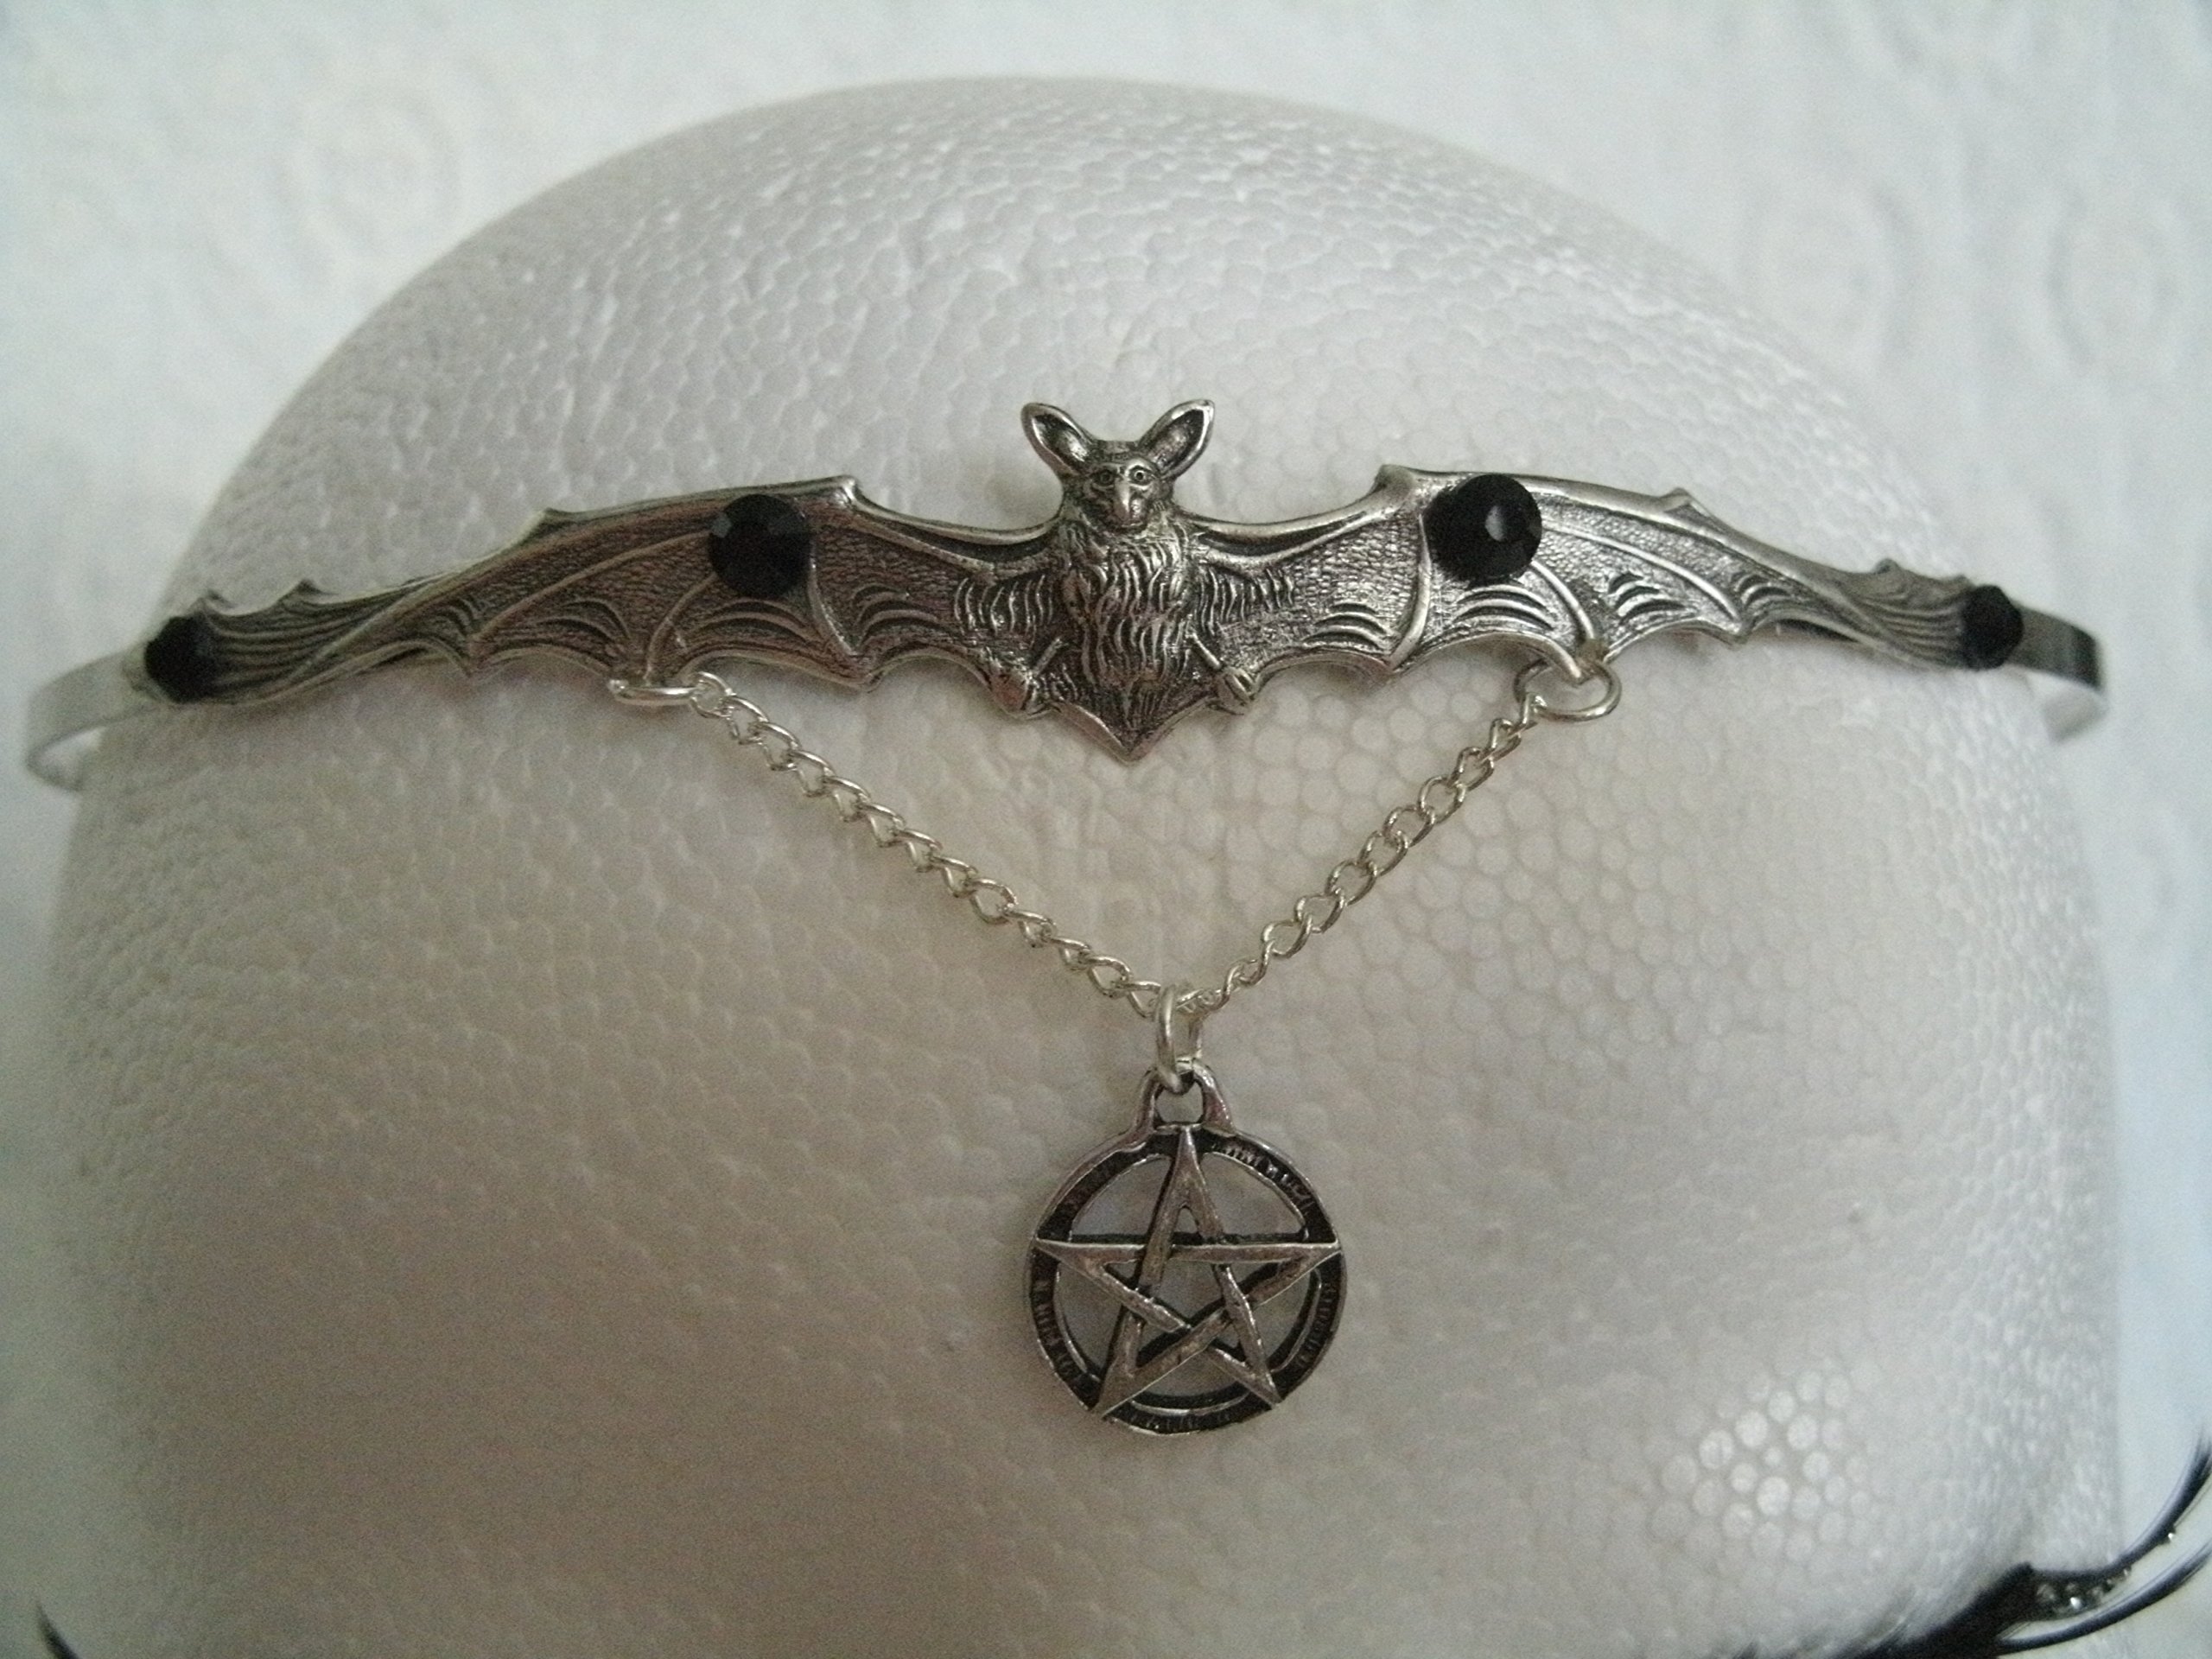 Bat Pentacle Circlet handmade jewelry wiccan pagan wicca witch witchcraft pentagram headpiece gothic goth